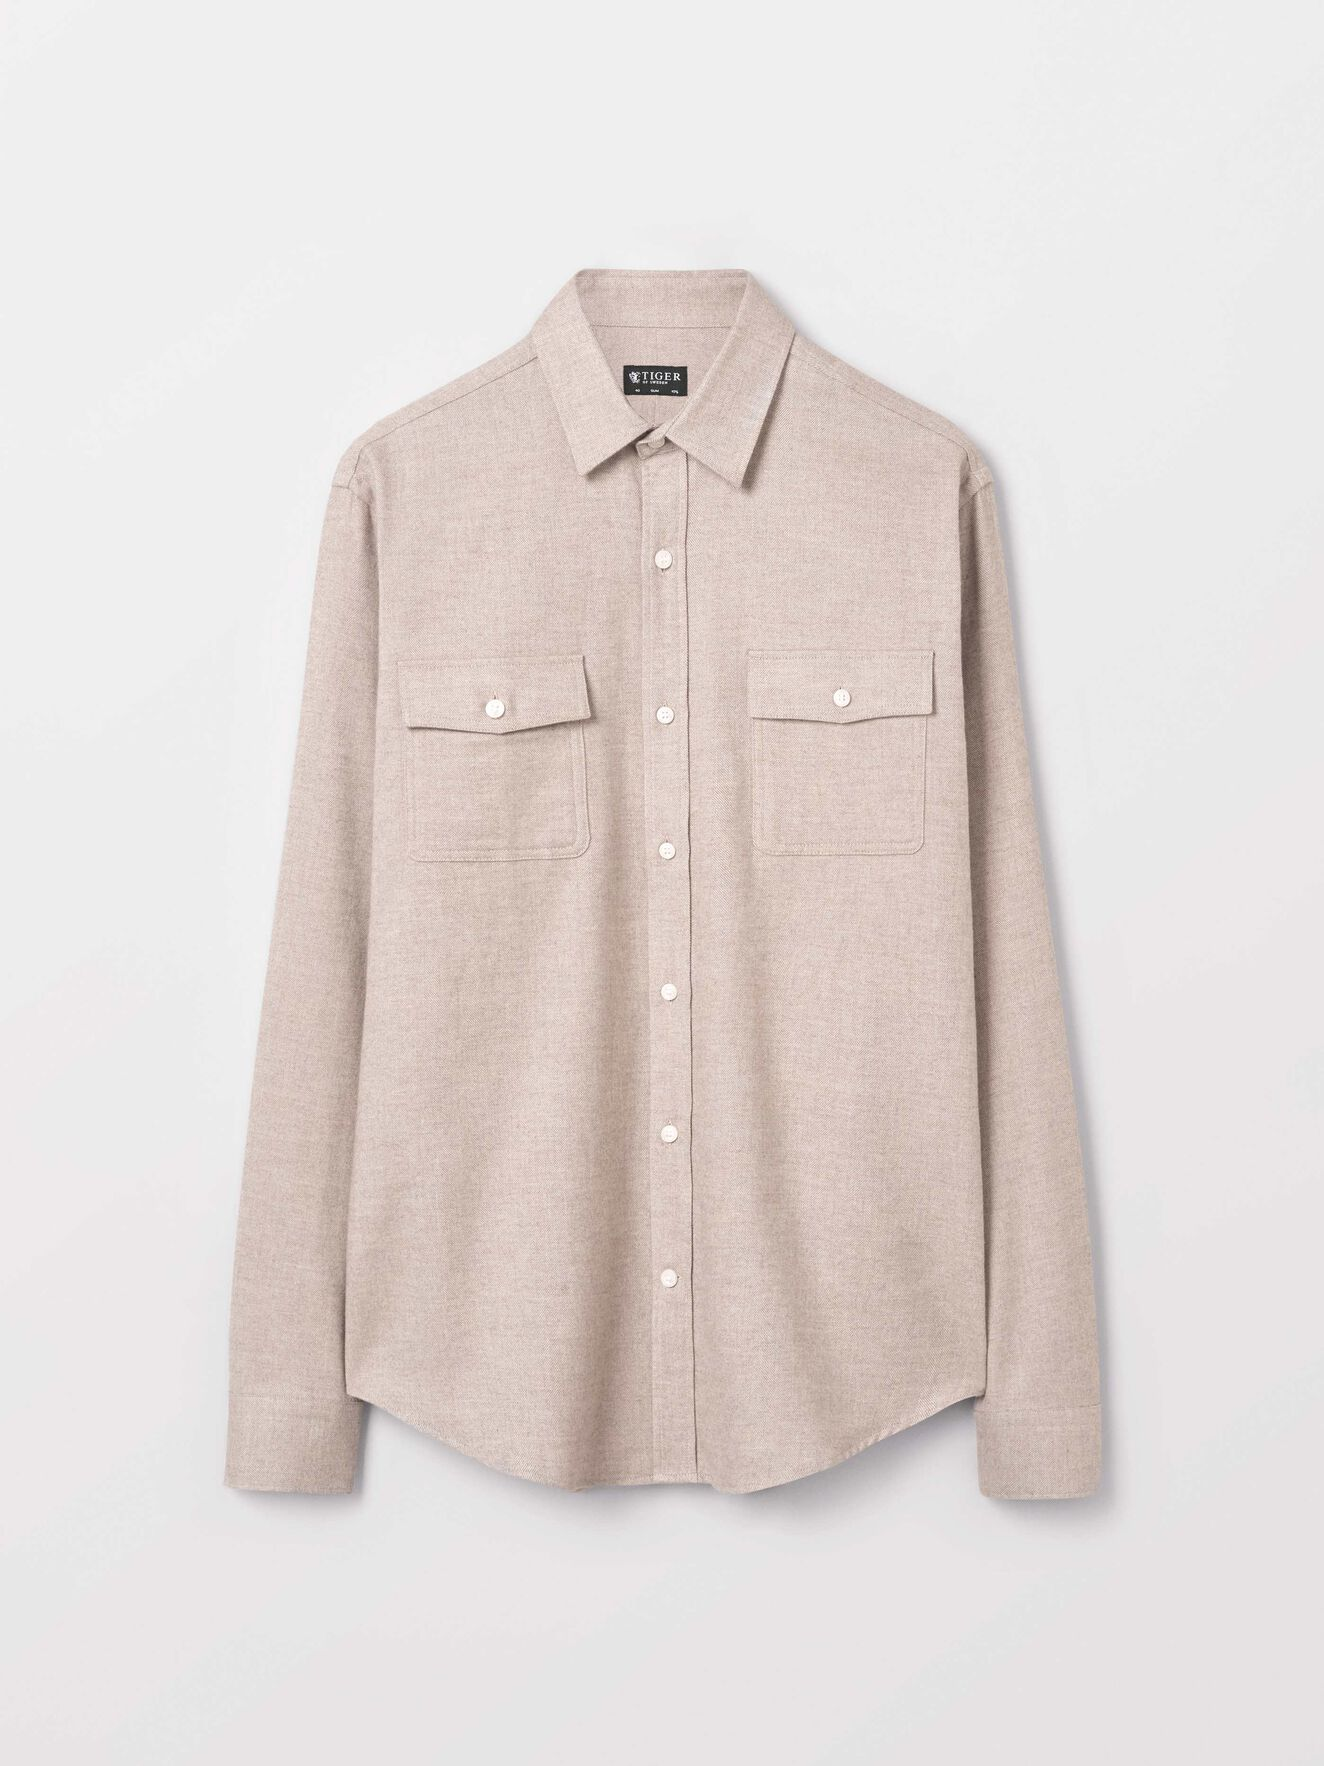 Frits Shirt in Macchiato from Tiger of Sweden